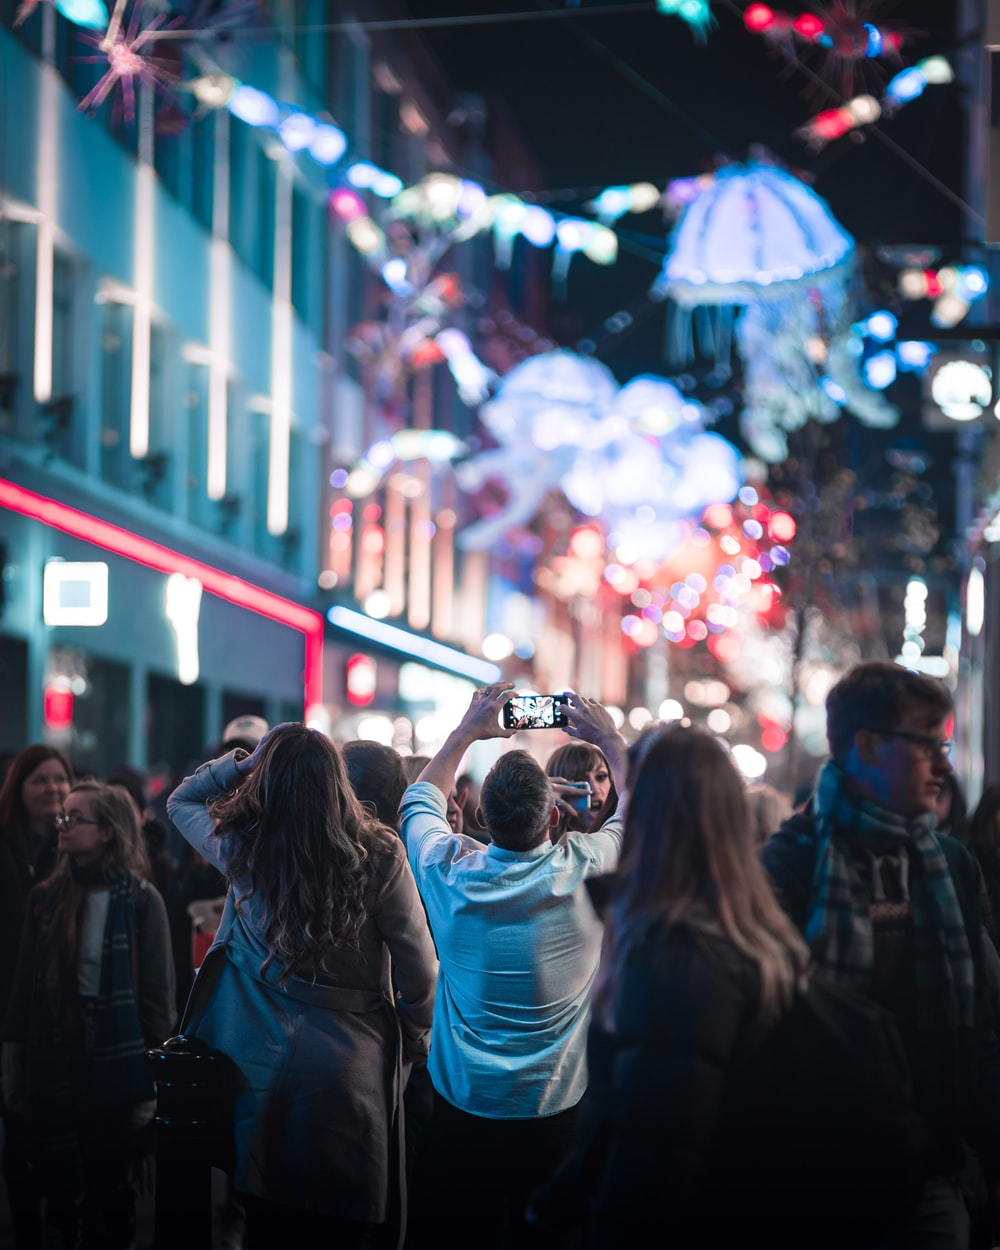 people in city with lights at night